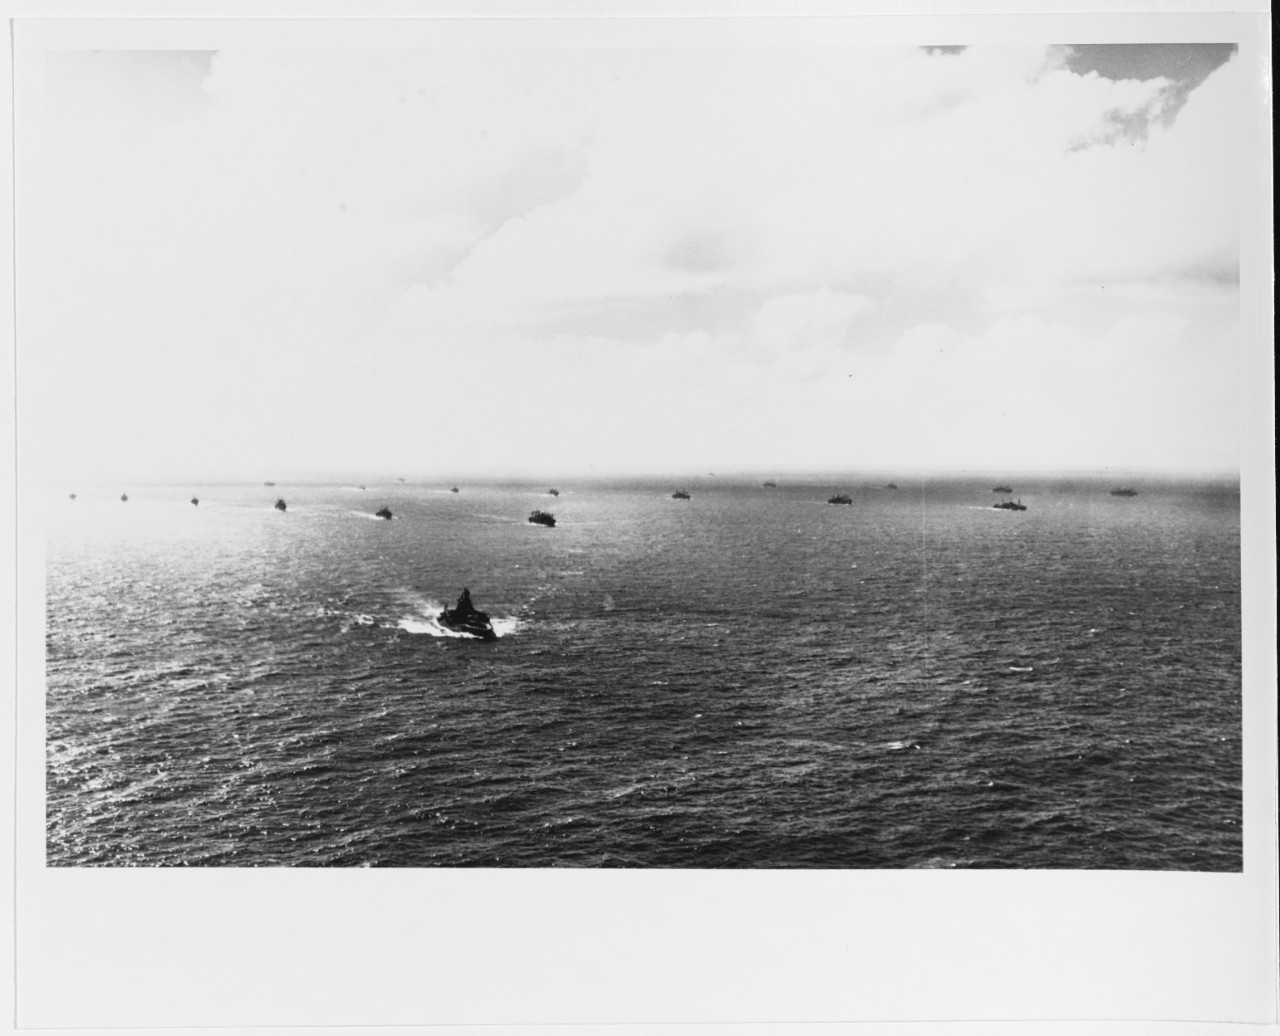 Tarawa Invasion, November 1943.